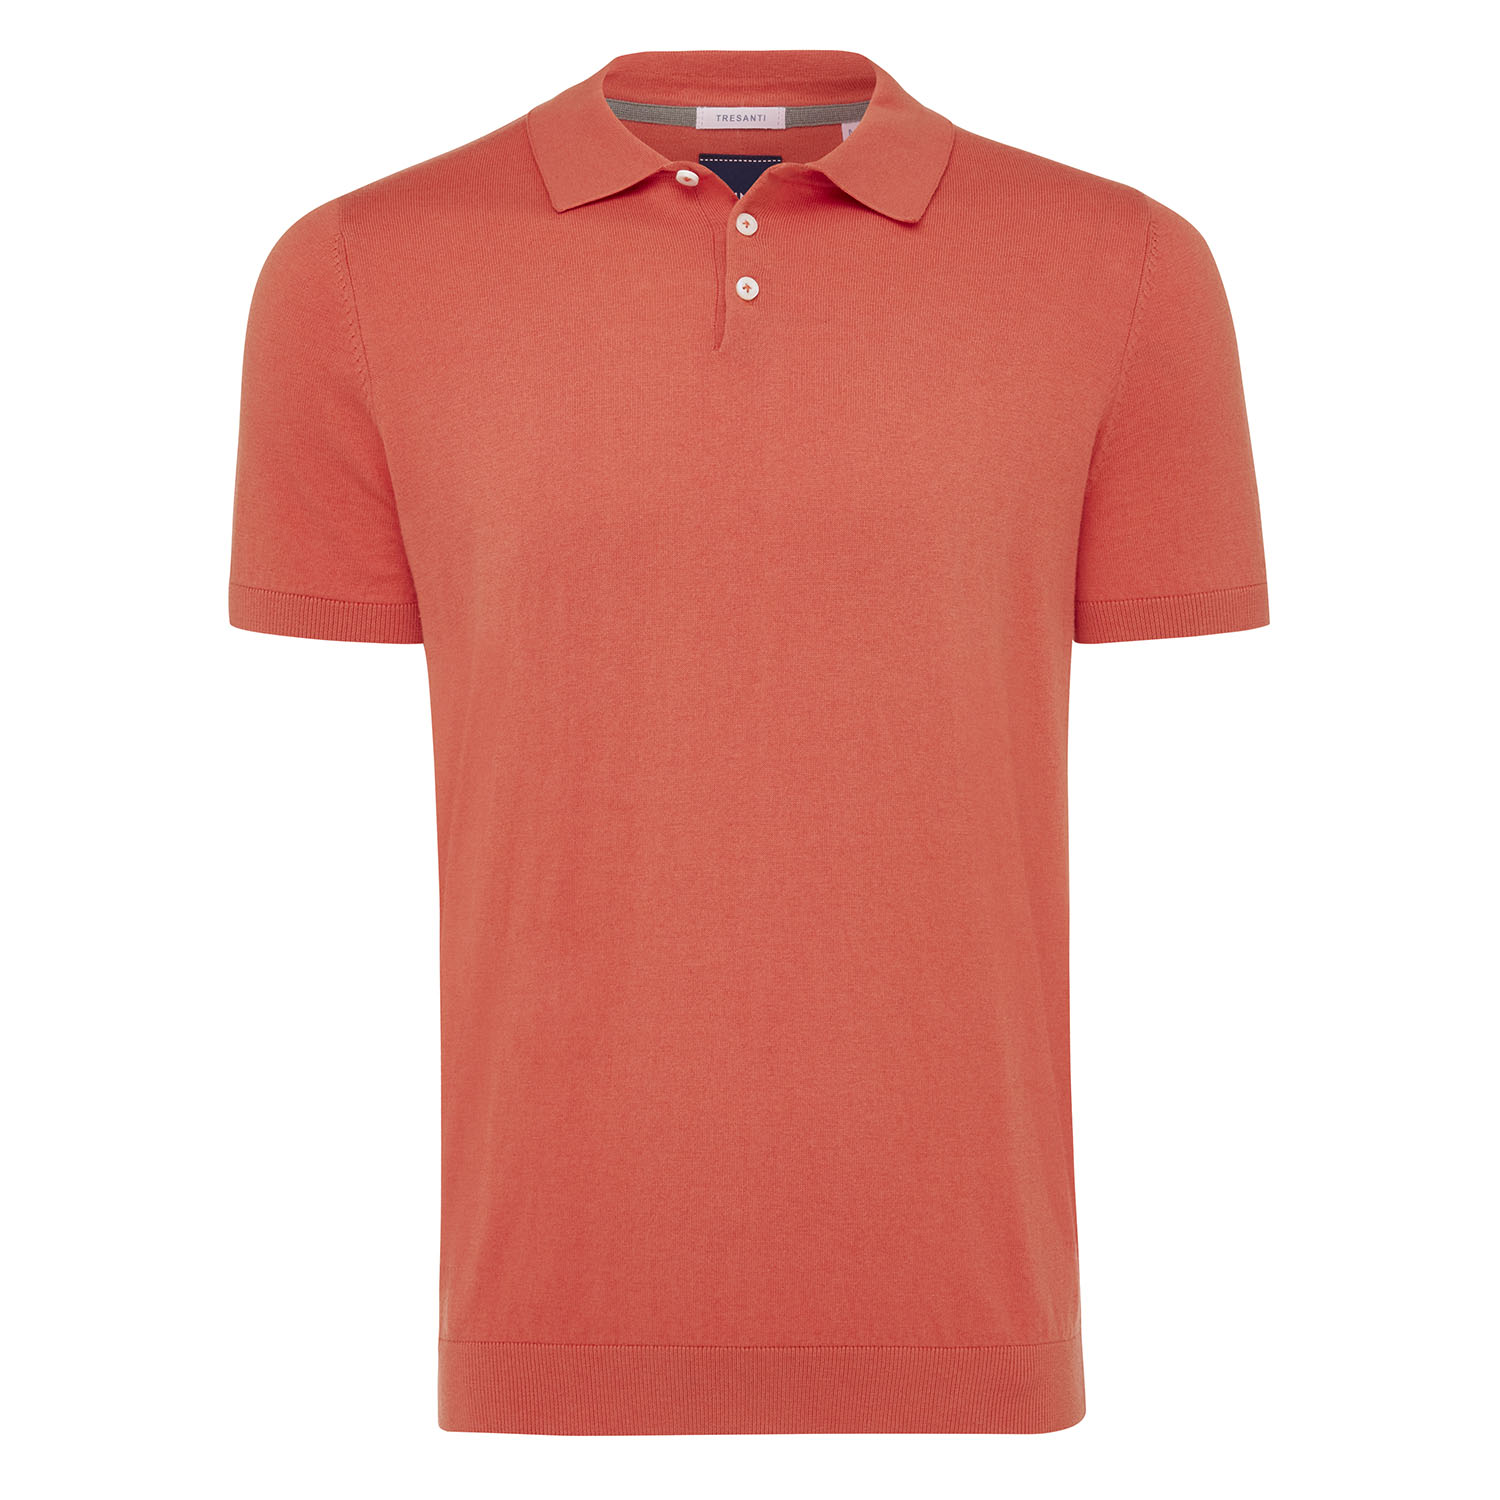 Trevor | Pullover short sleeve cotton/cashmere coral